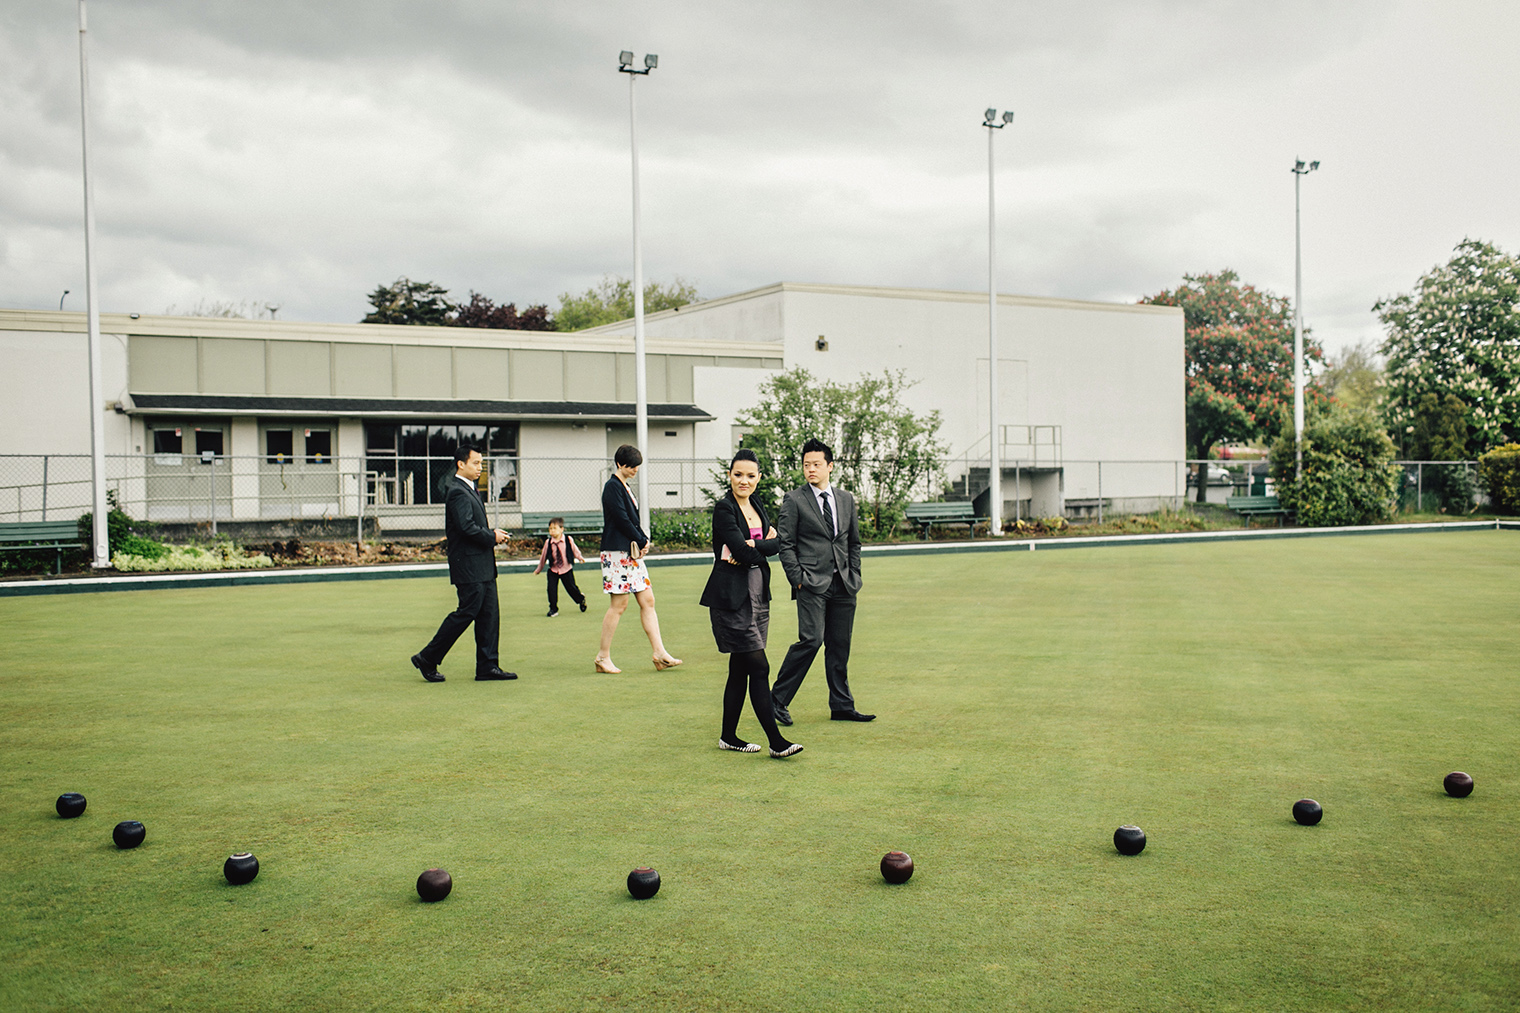 rainy day wedding at burnside lawn bowling club